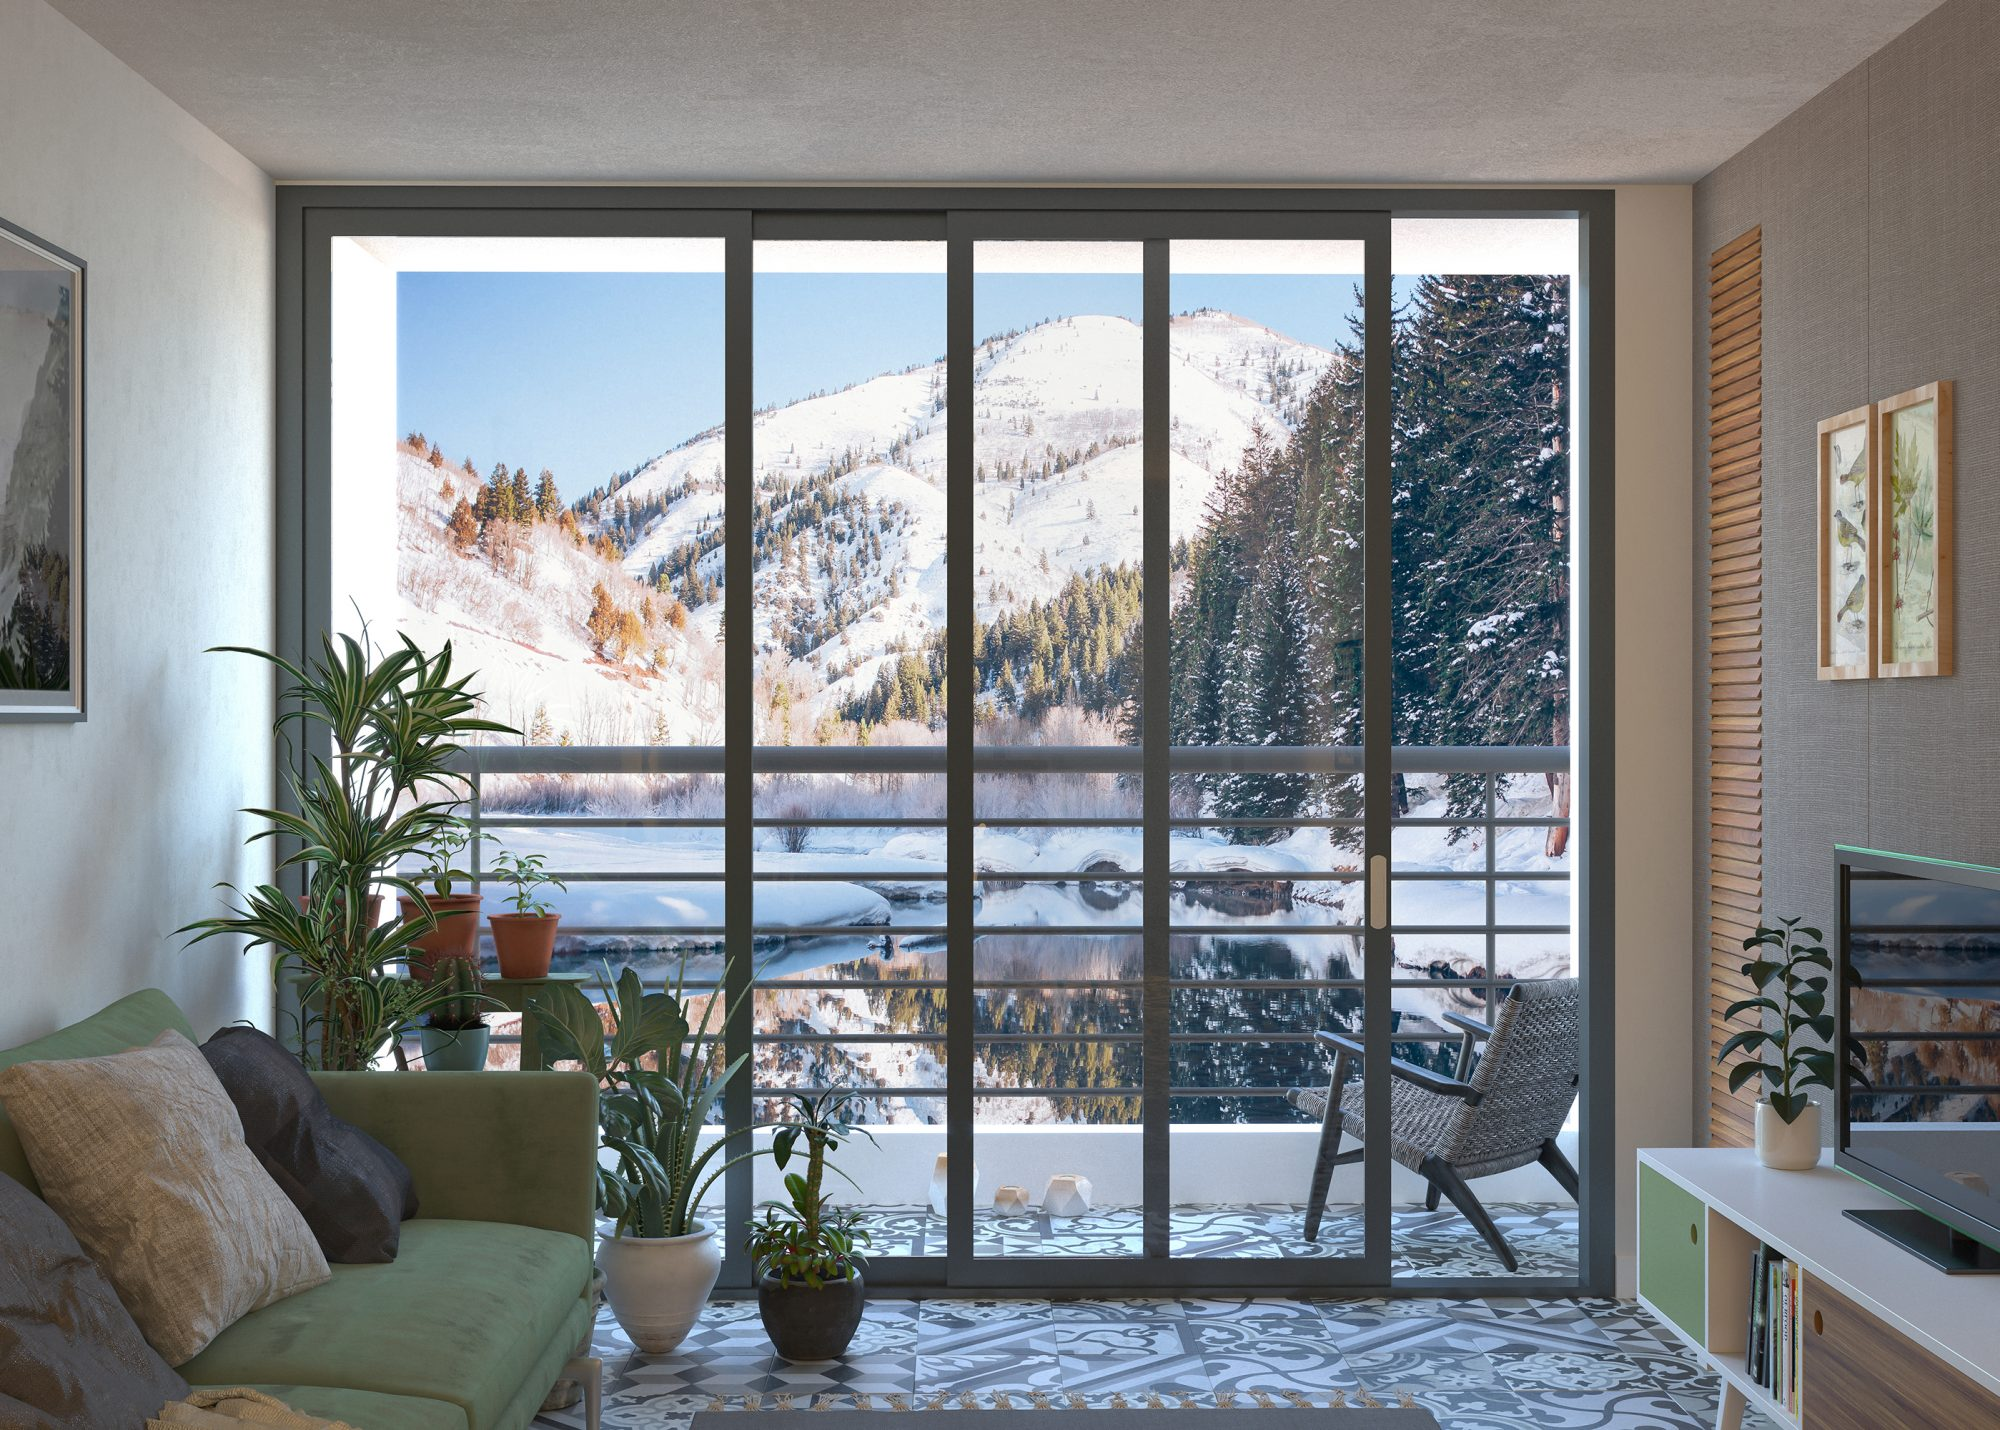 House by the mountain lake living room with snow scene and plants